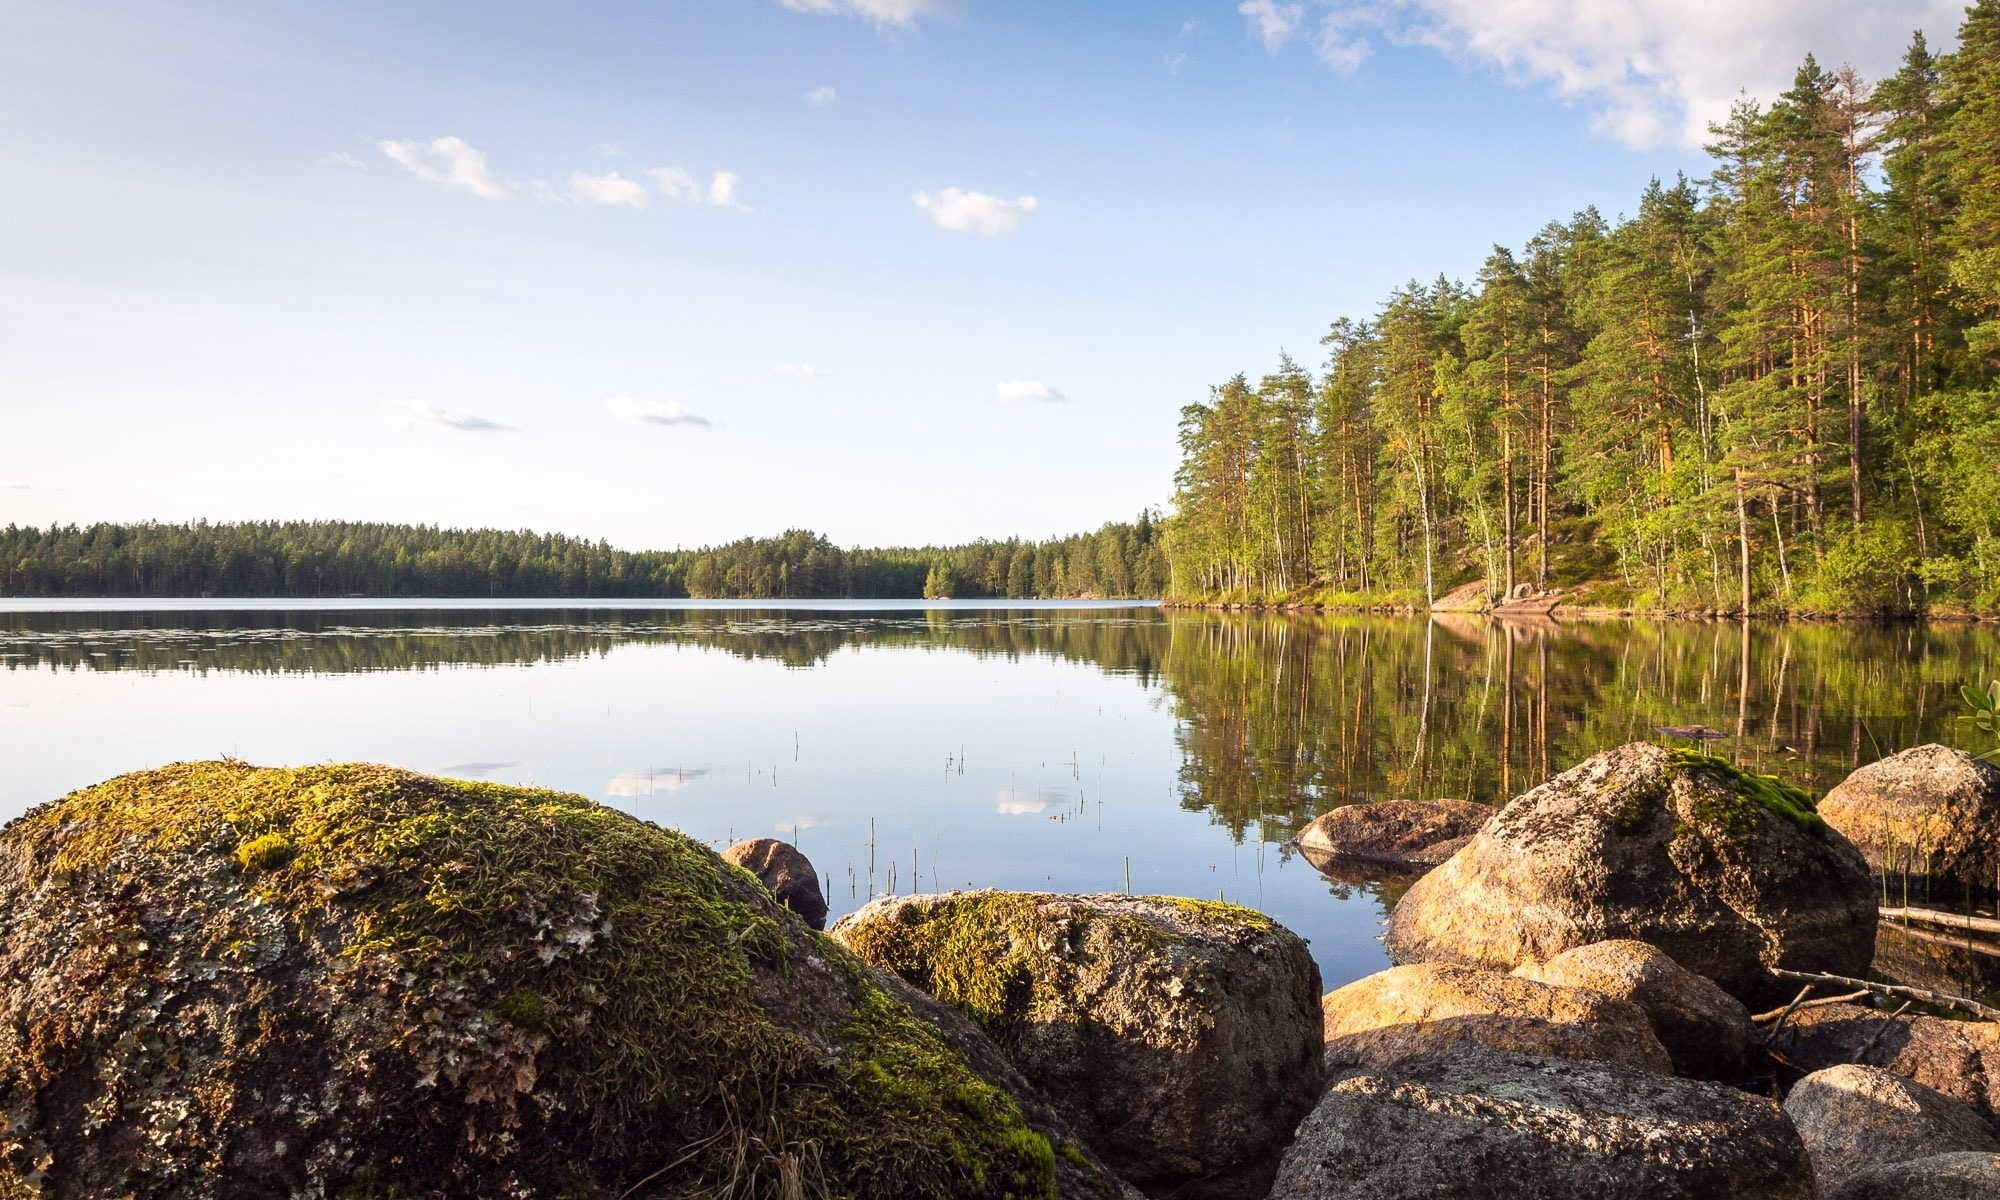 Nuuksio National Park in summer. The iconic Finnish nature with clear lake and forest. Nature near Helsinki, Finland.